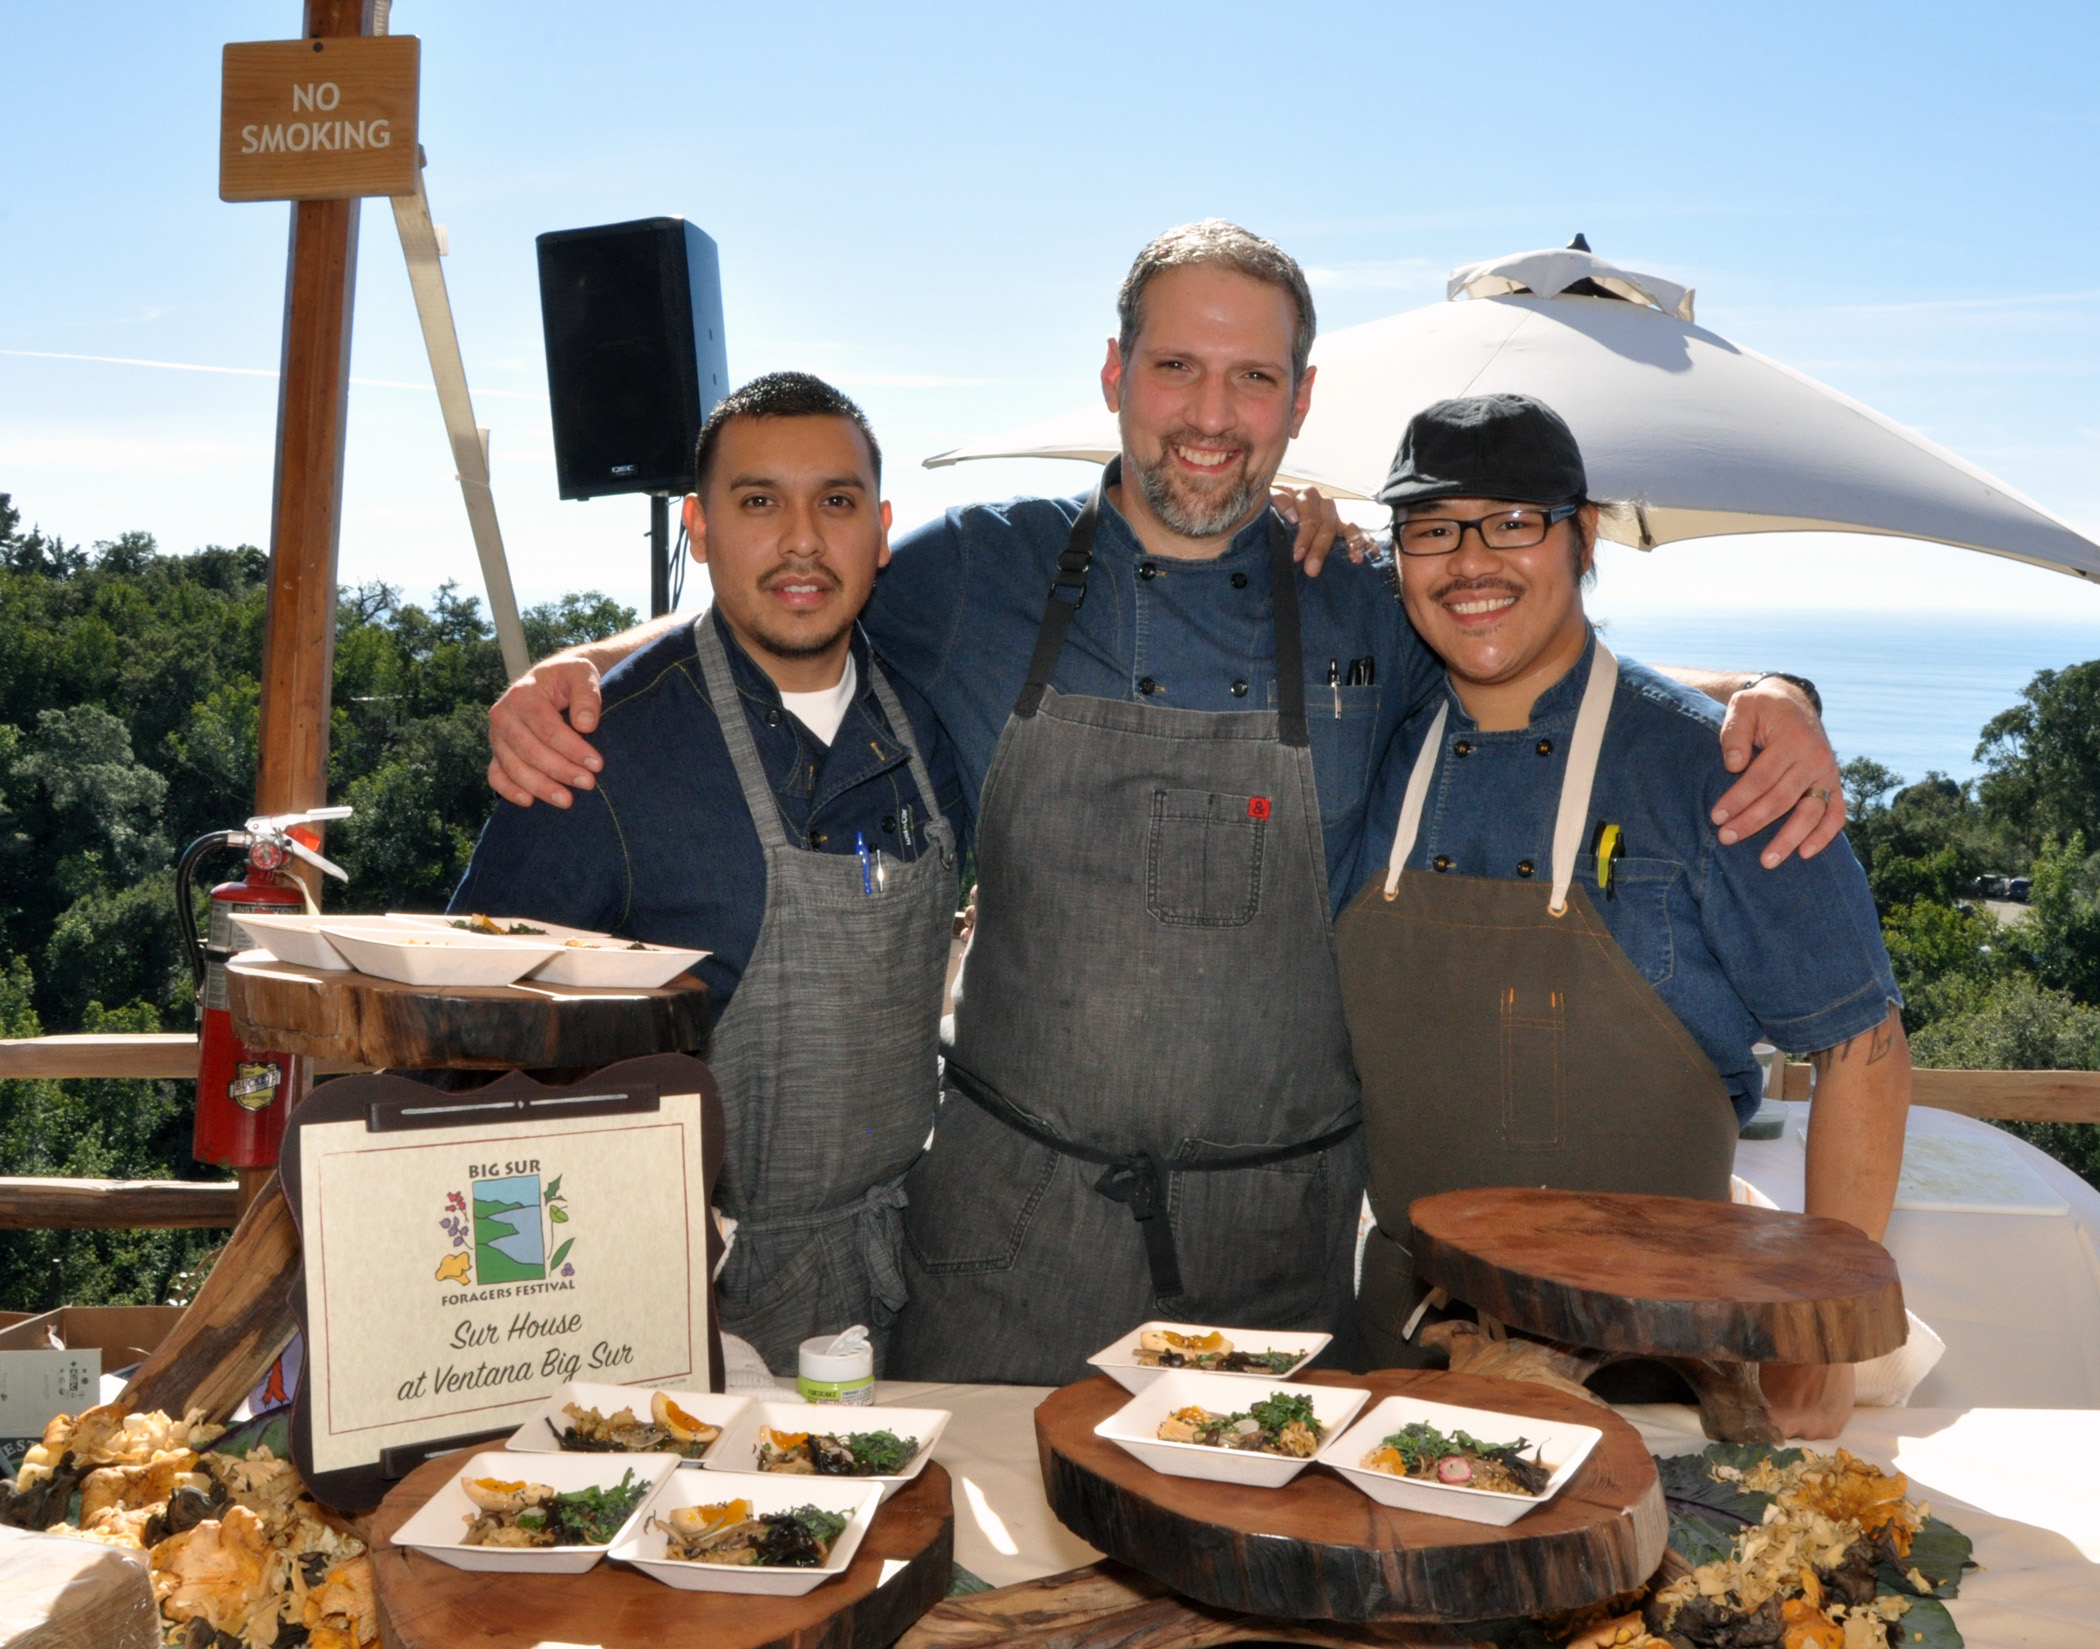 6. Chef and cooks of Sur House at Ventana Big Sur